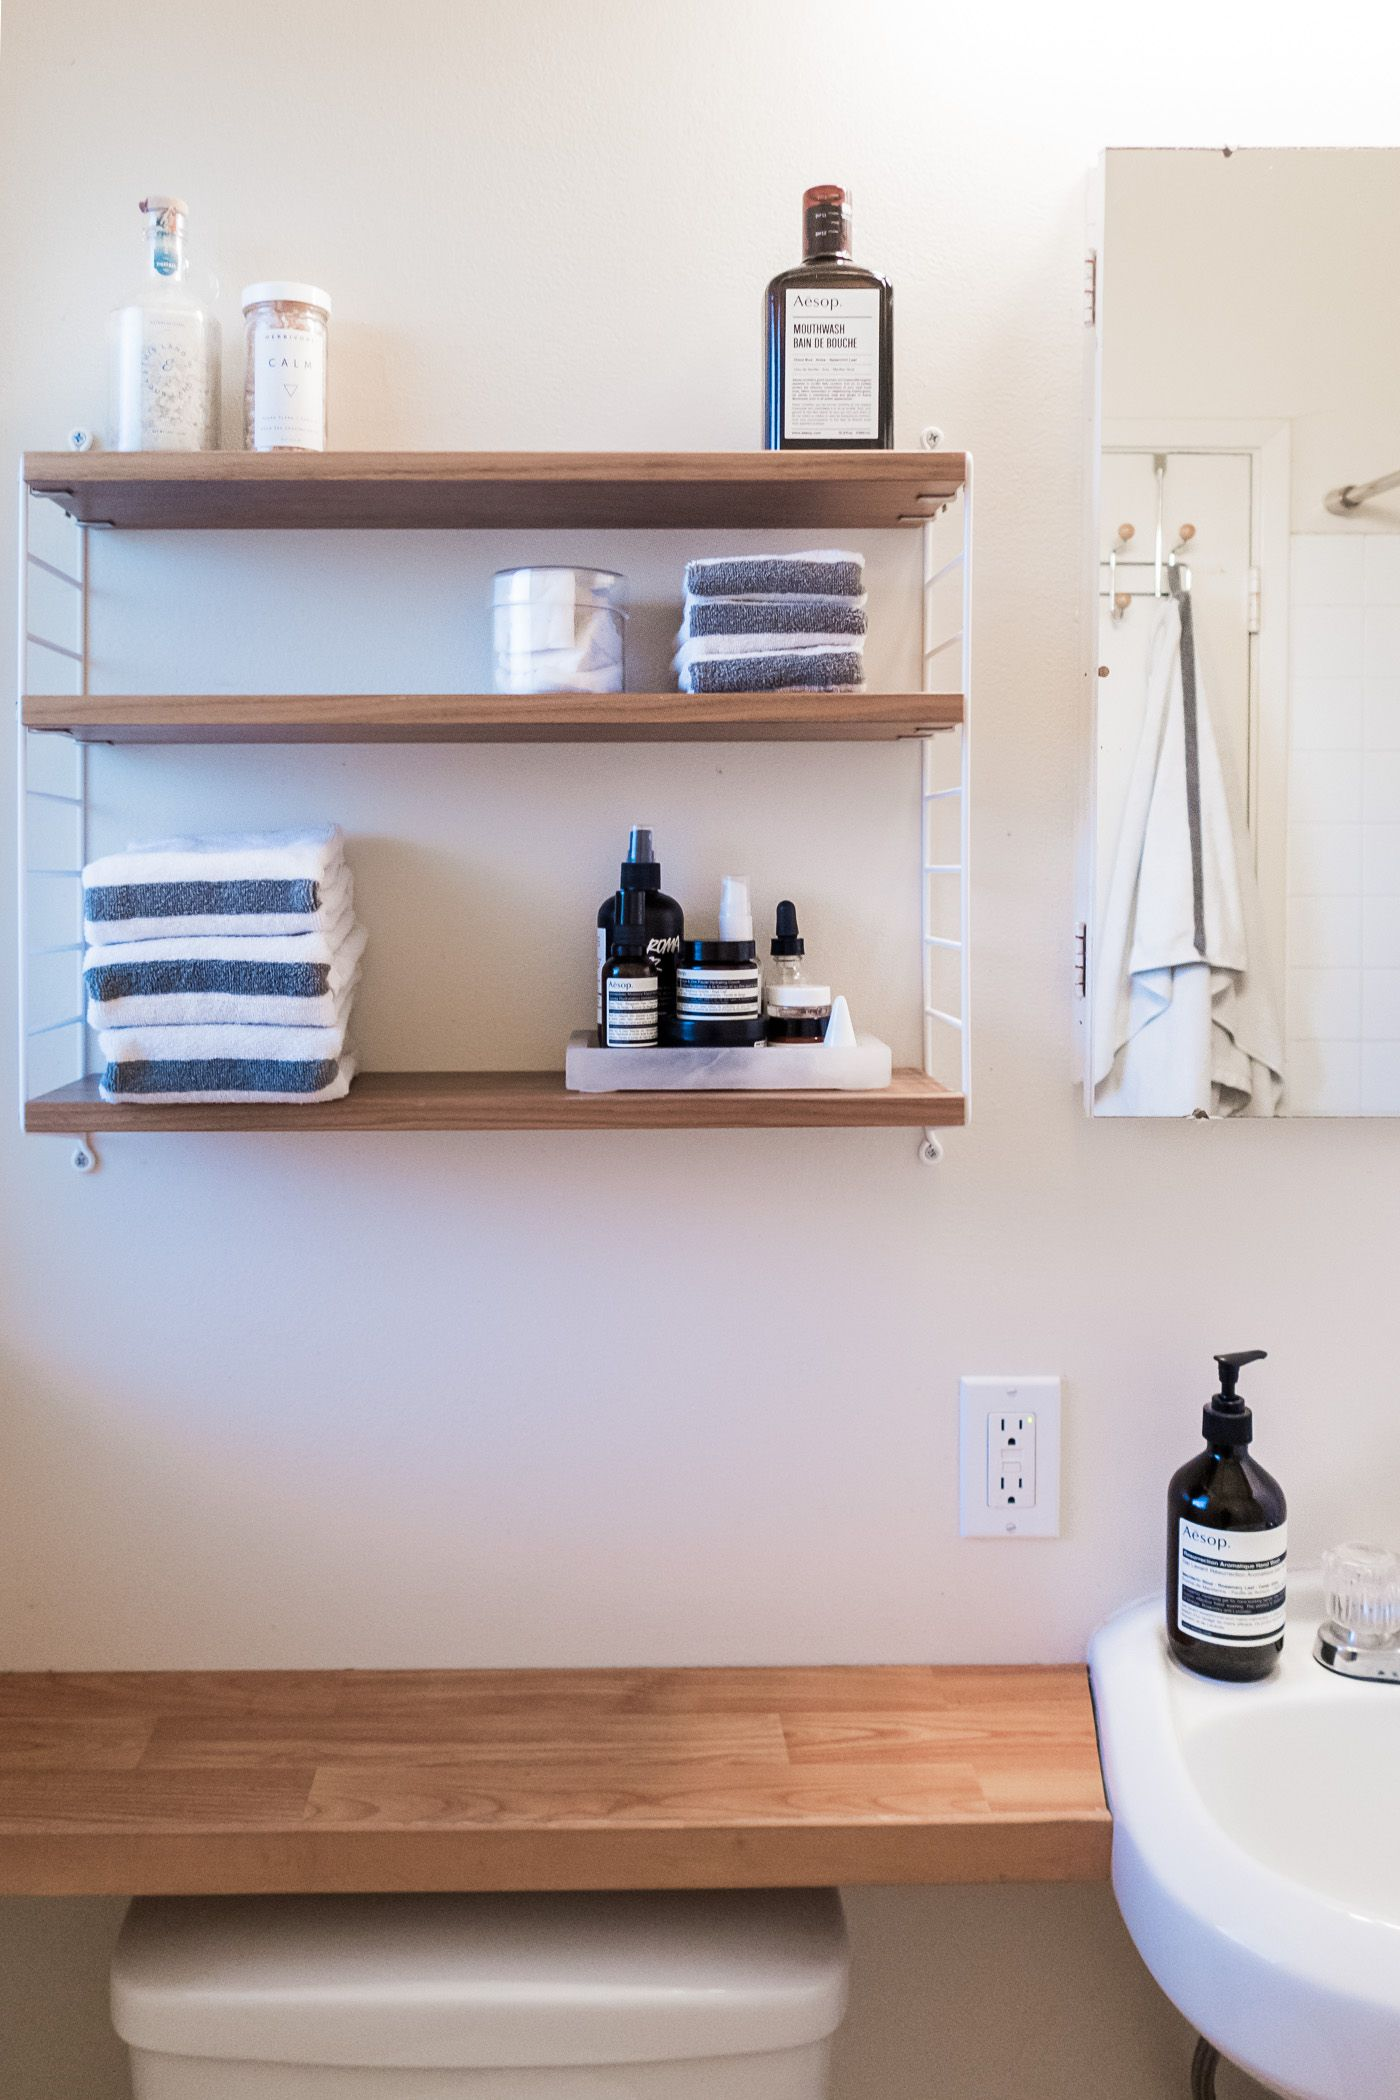 Small Space Bathroom Tips 11 ways to clear clutter and